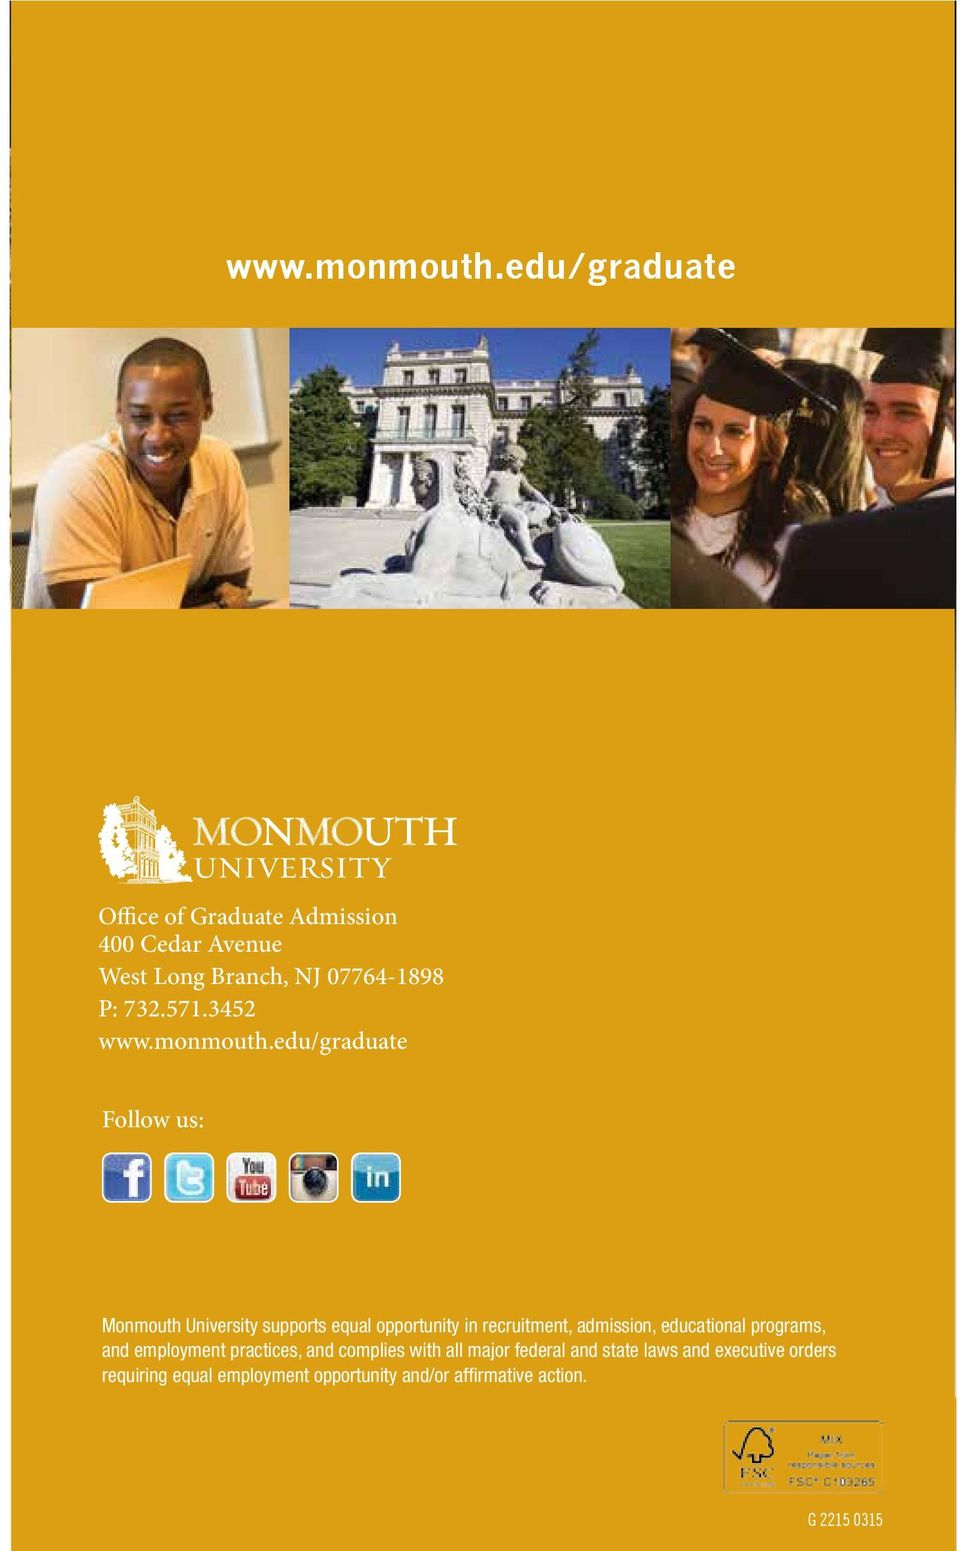 3452 edu/graduate Follow us: Monmouth University supports equal opportunity in recruitment, admission,